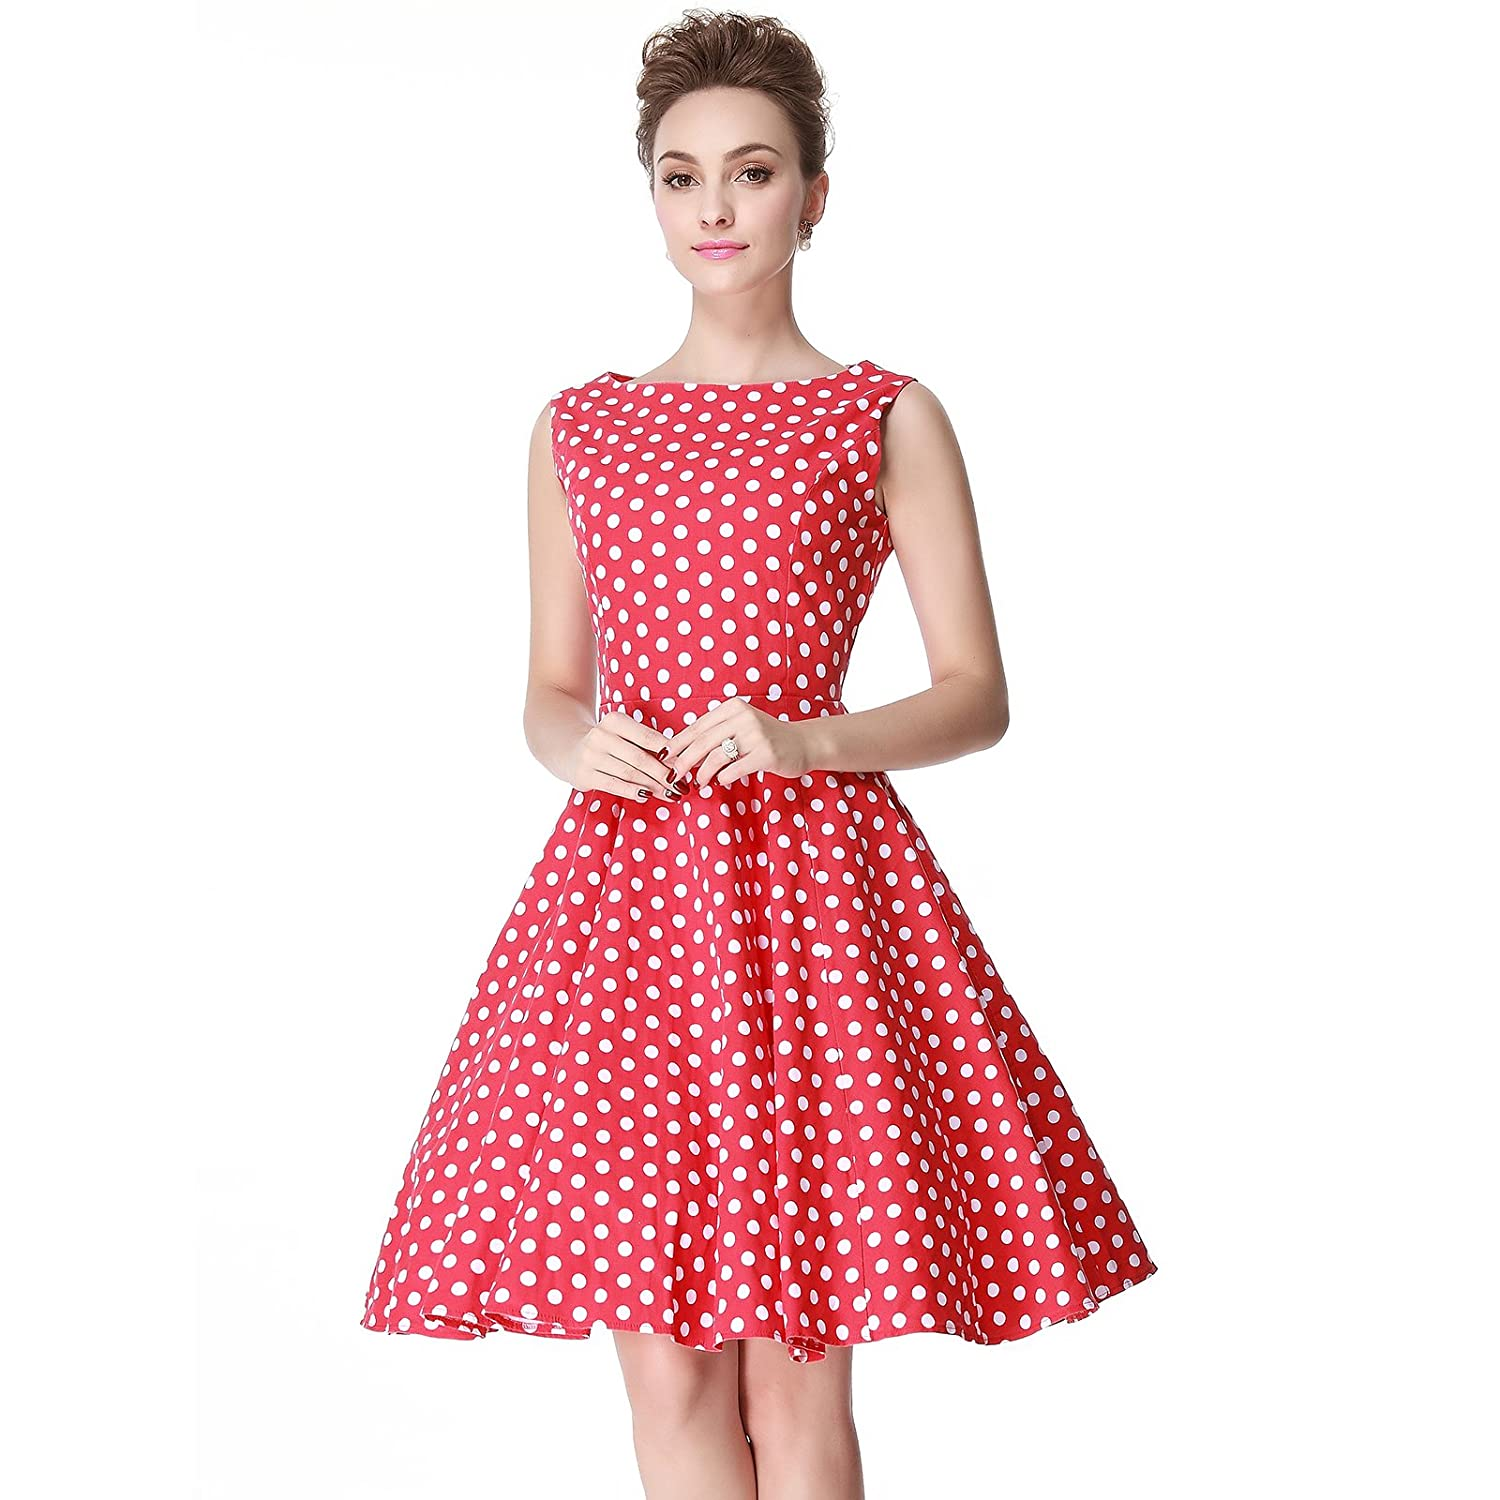 1940s Pinup Dresses for Sale Heroecol Womens Vintage 1950s Dresses Boat Neck Sleeveless 50s 60s Polka Dot Style Retro Swing Cotton Dress $24.99 AT vintagedancer.com